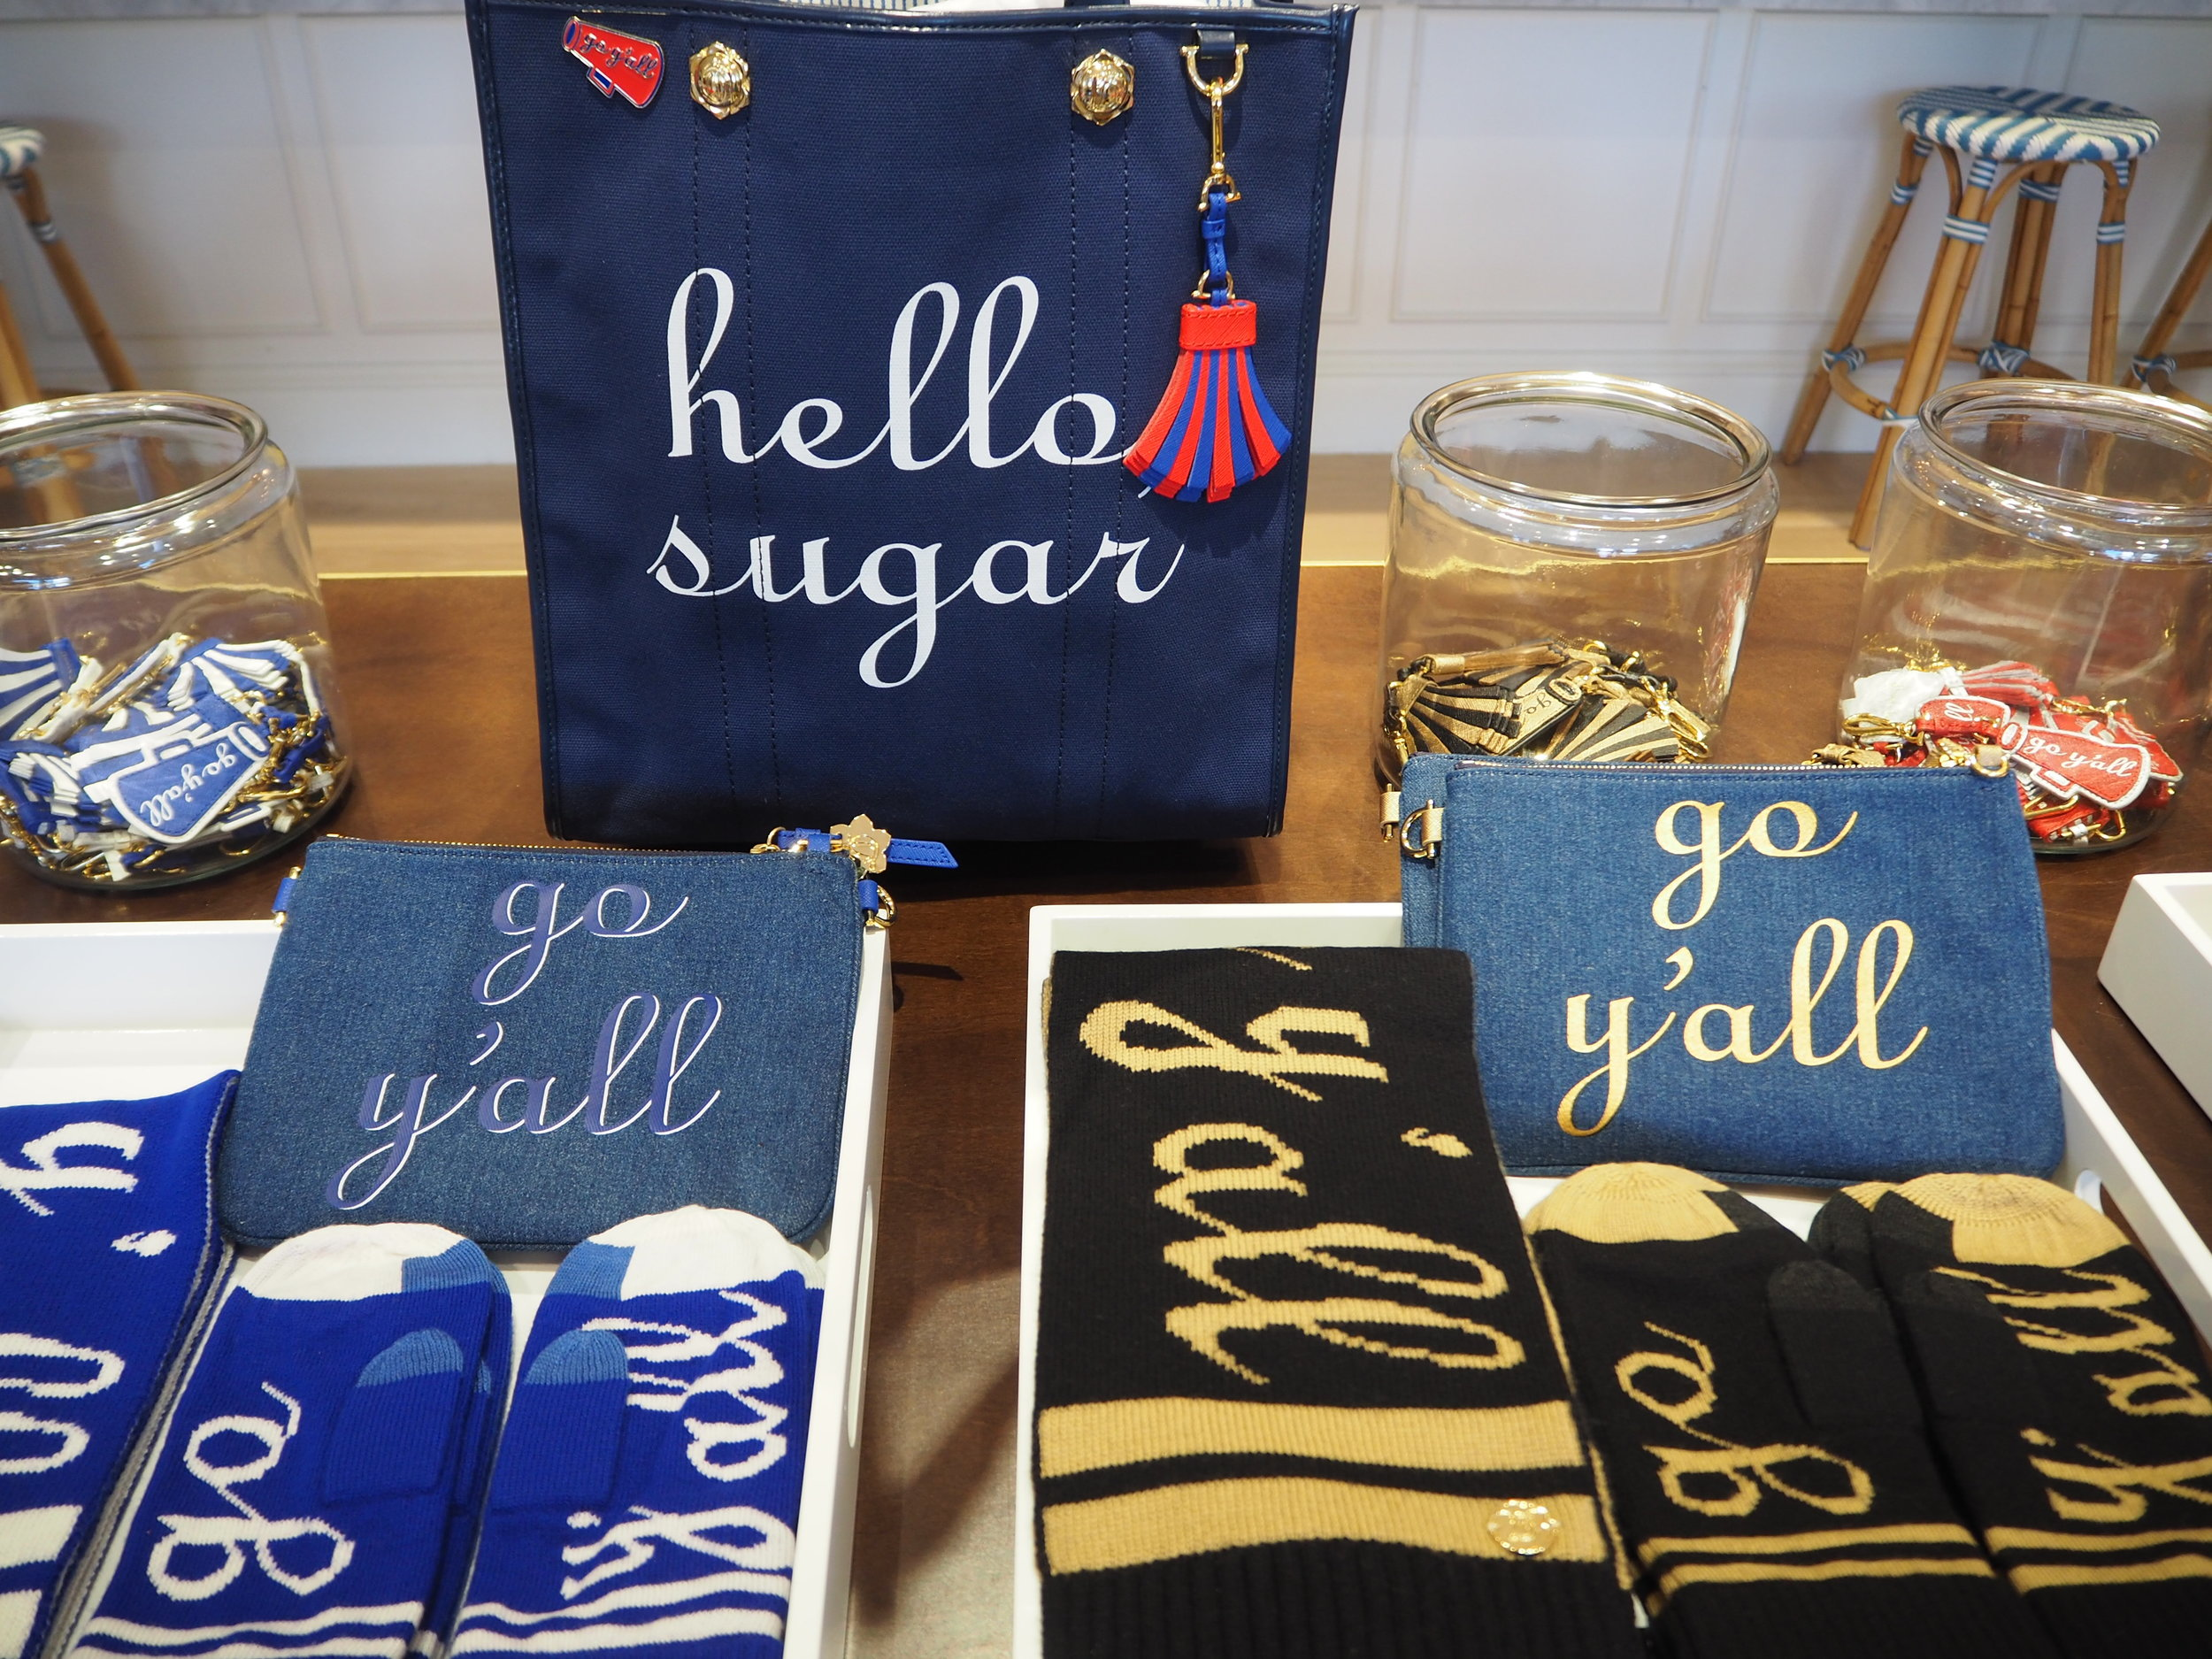 Hello Sugar! Cute branding at Draper James. Lifestyle brand by Reese Witherspoon, in Nashville Tennessee.